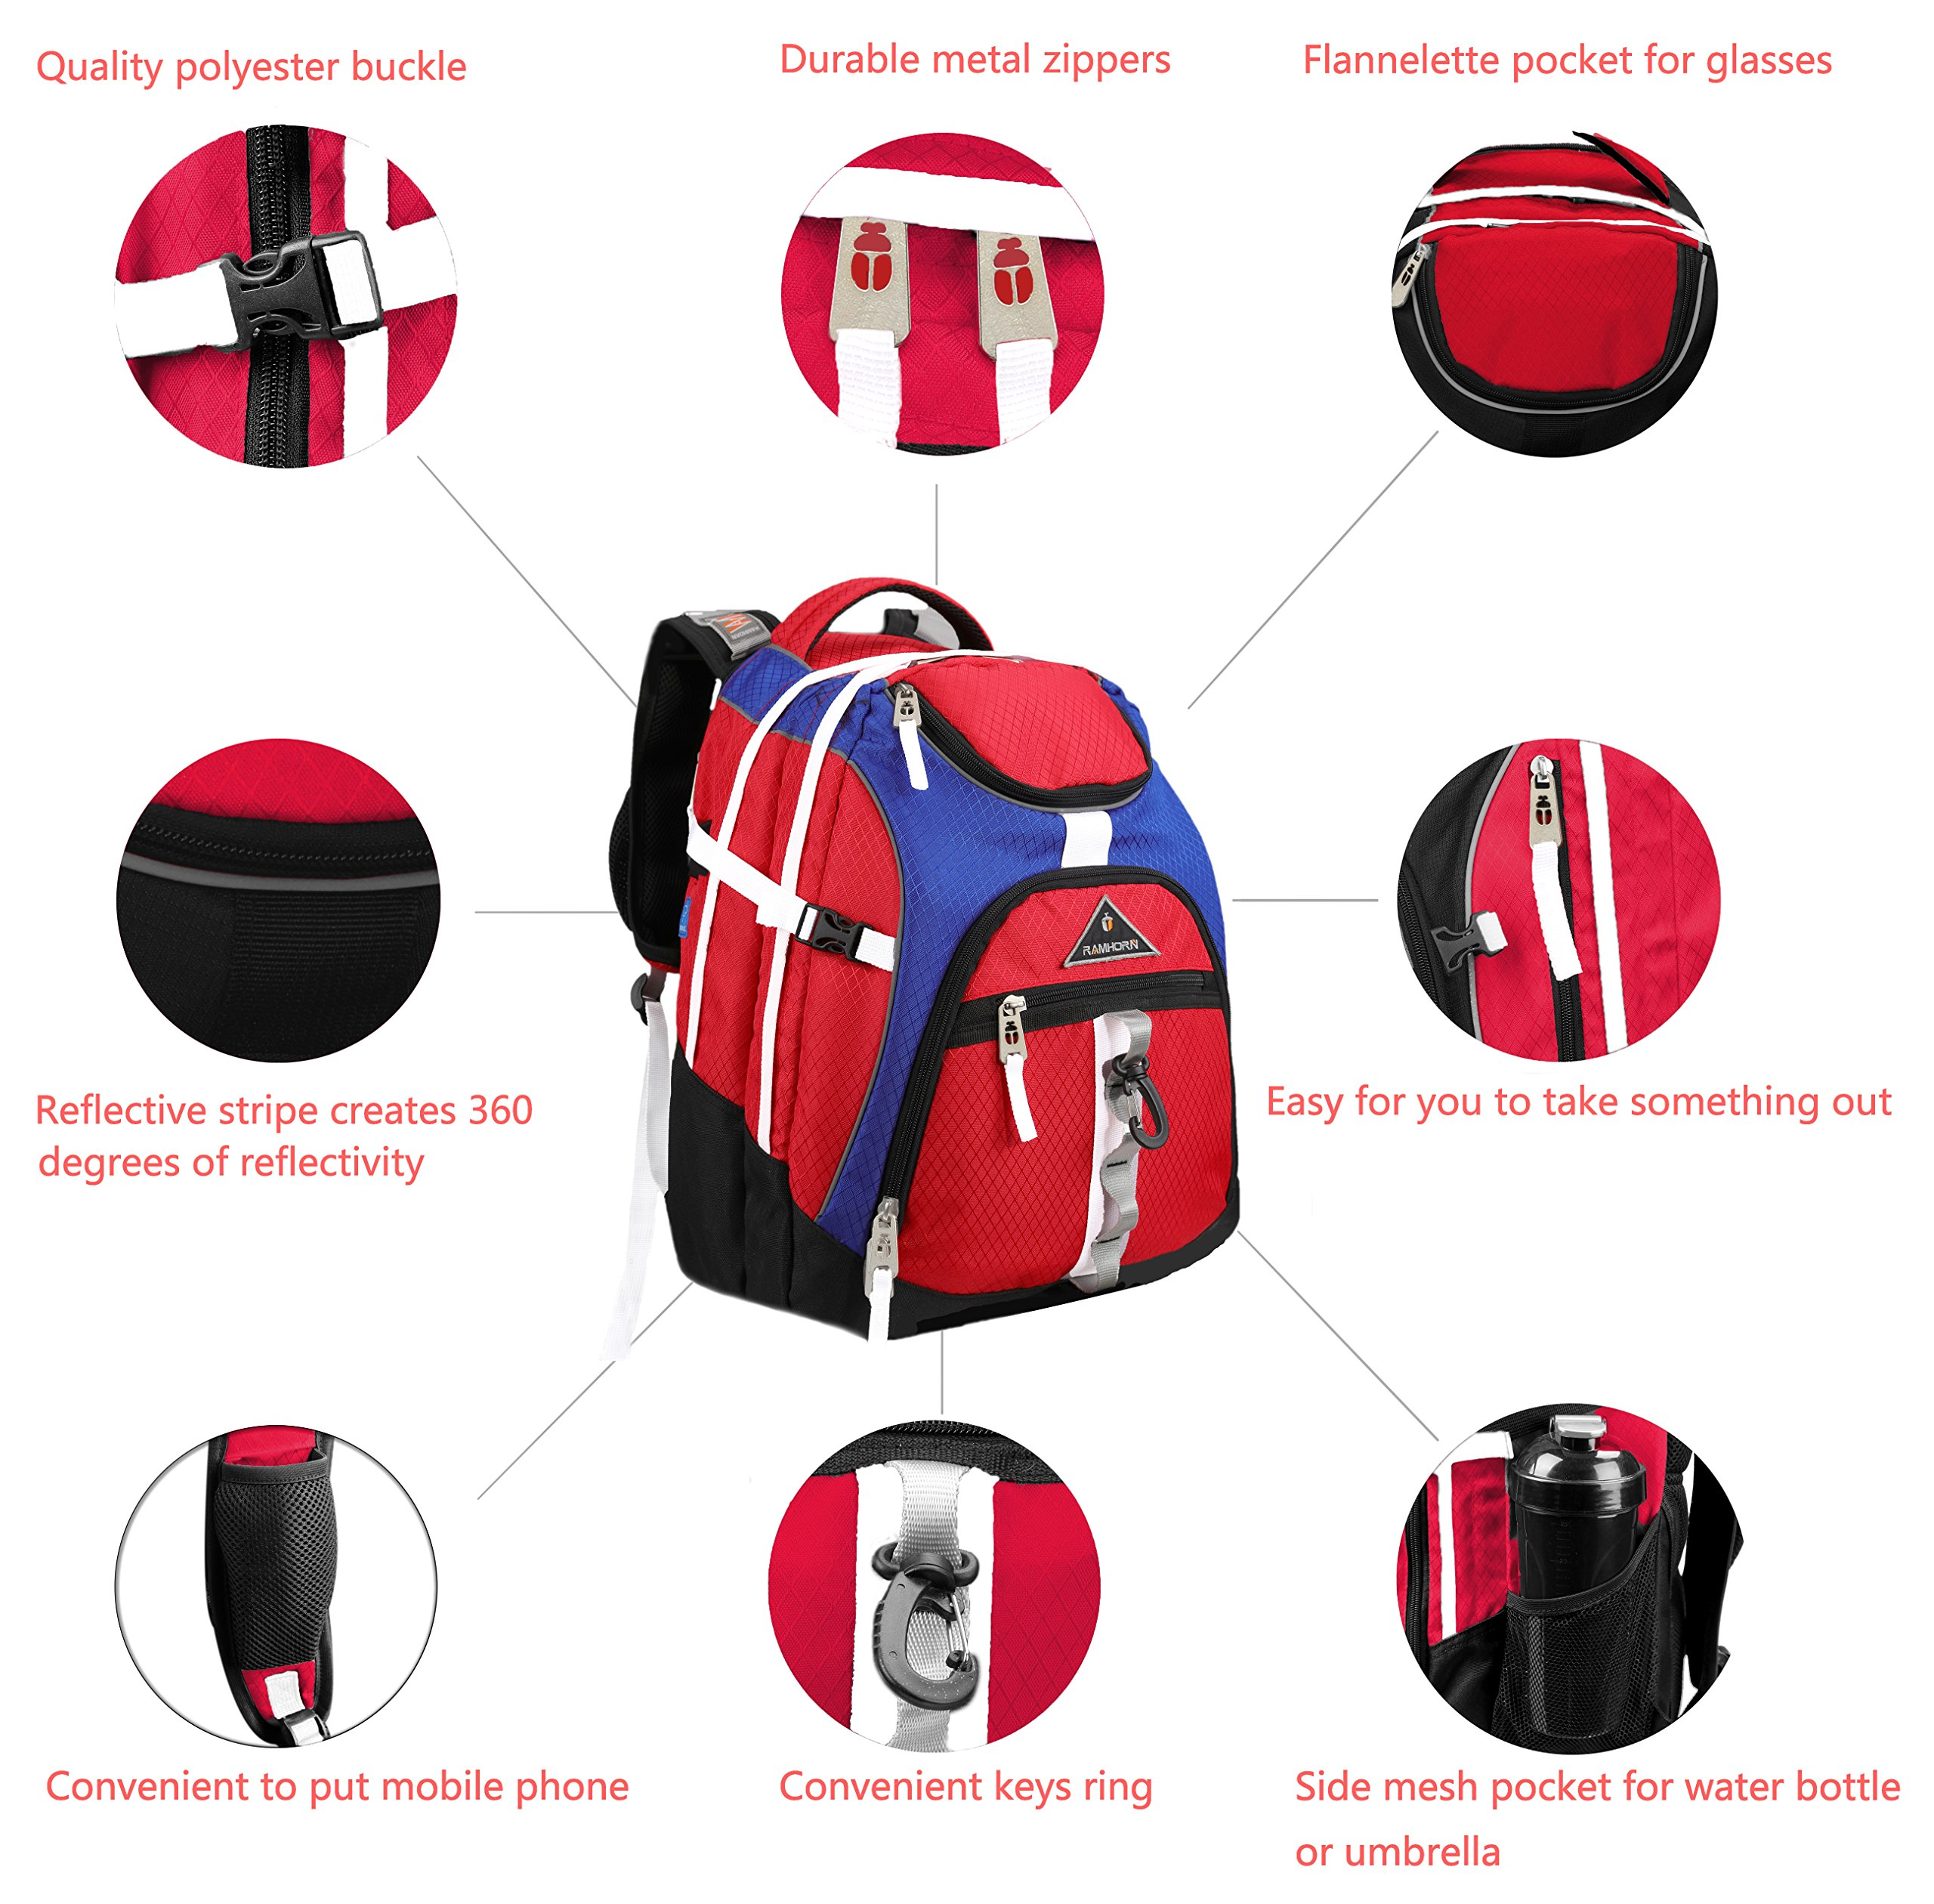 Laptop Backpack 15.6-Inch Business College Travel Computer Bag for Surface Water-Resistant Waterproof USB Charging Port Slim Light Weight Reflective Strip Rain Cover Large Capacity by Ramhorn(warmred) by Ramhorn (Image #4)